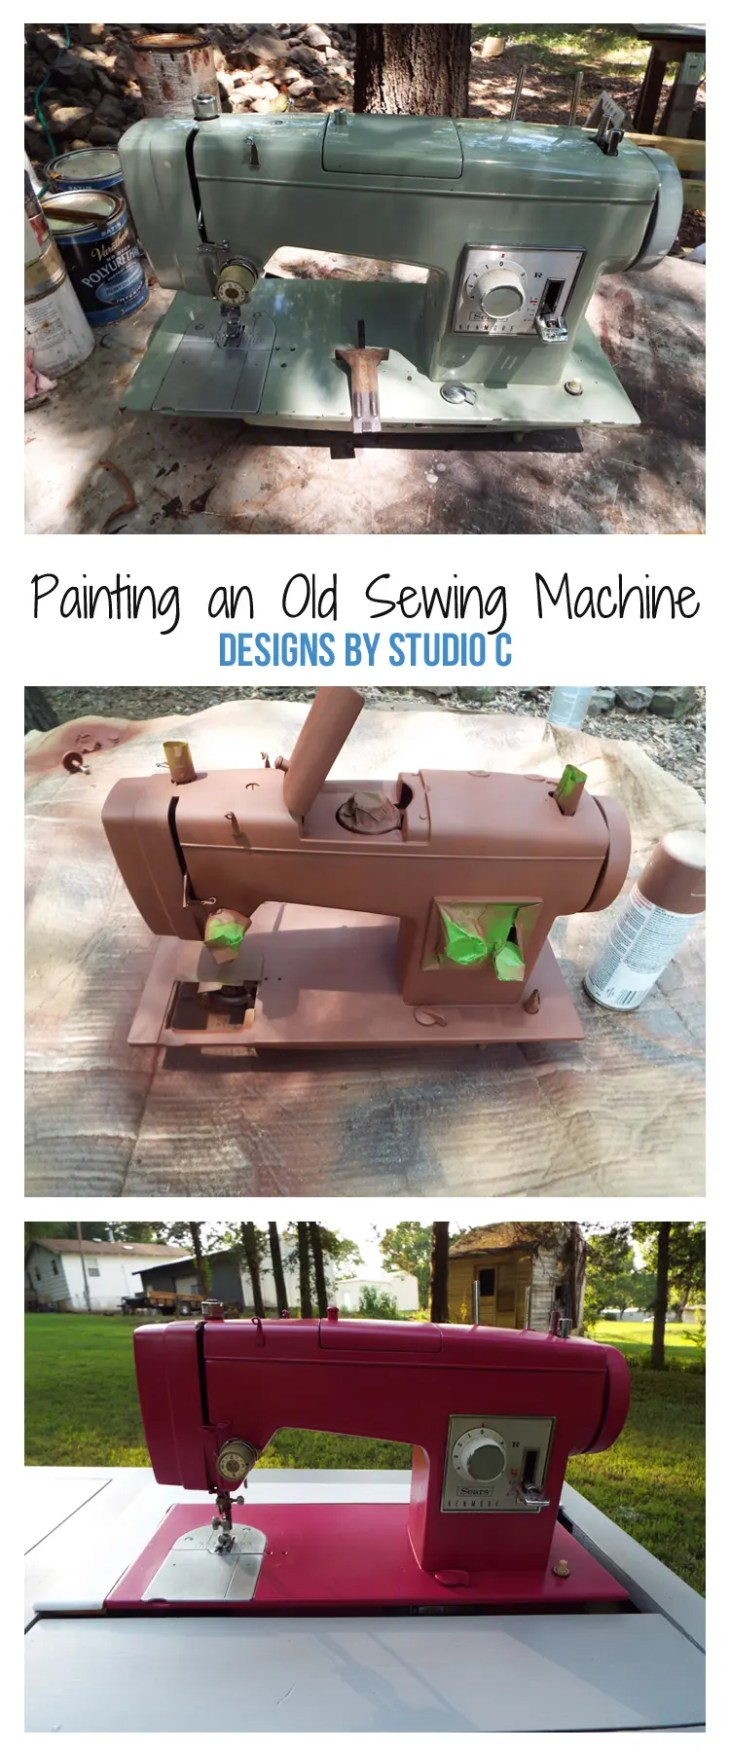 Using spray paint and primer, I gave a fabulous makeover to an old metal sewing machine (that still works!) and cannot wait to use it to sew something fabulous!